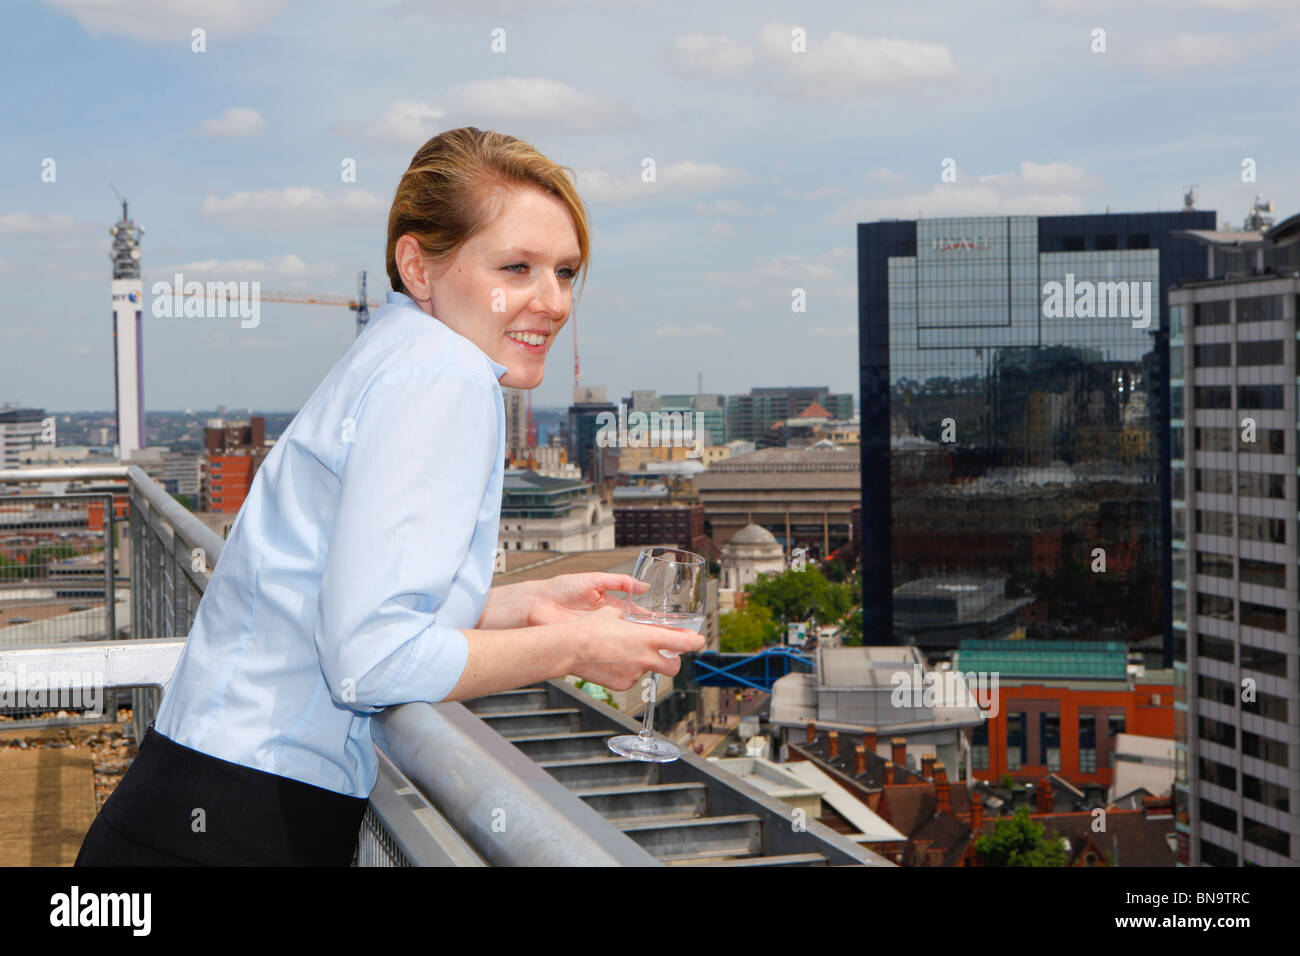 Women looking out at the city from her apartment in Birmingham. - Stock Image